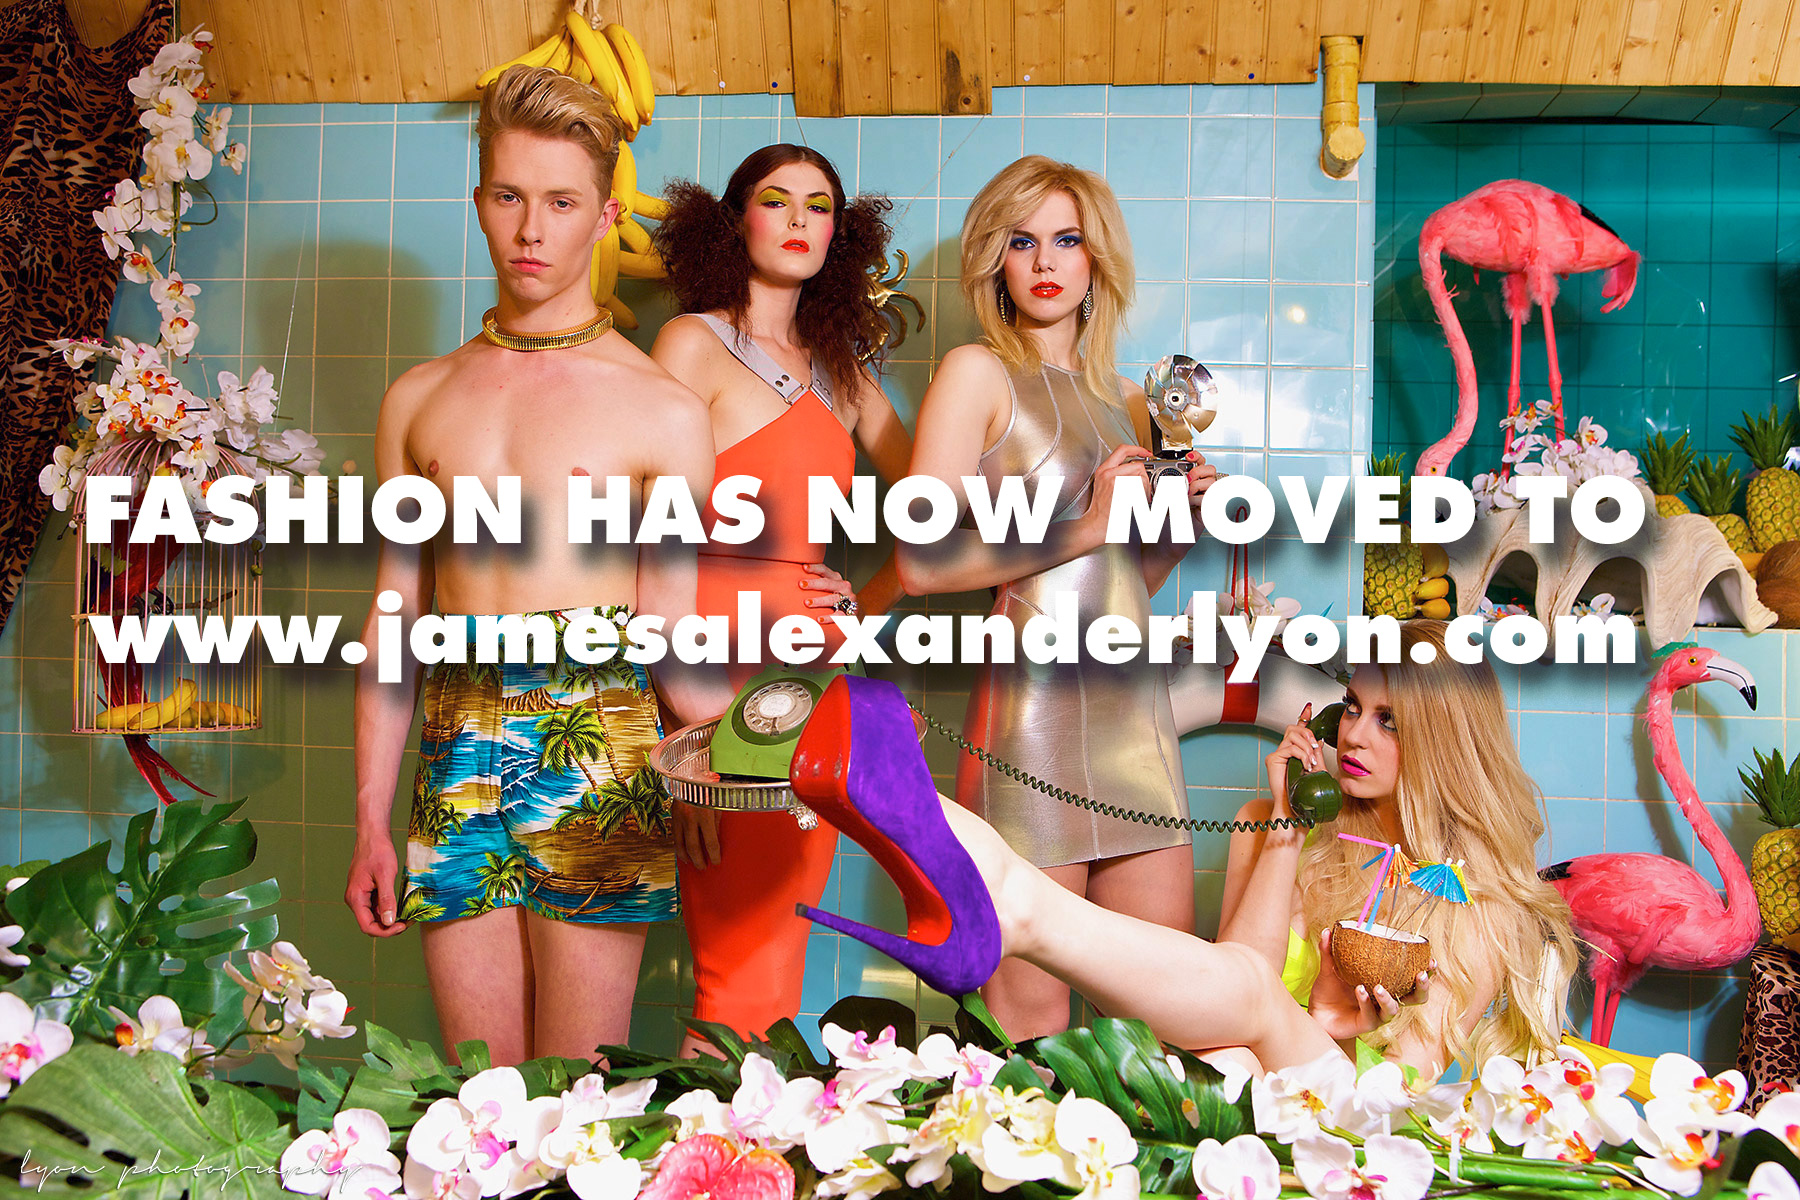 Fashion has now moved to: www.jamesalexanderlyon.com